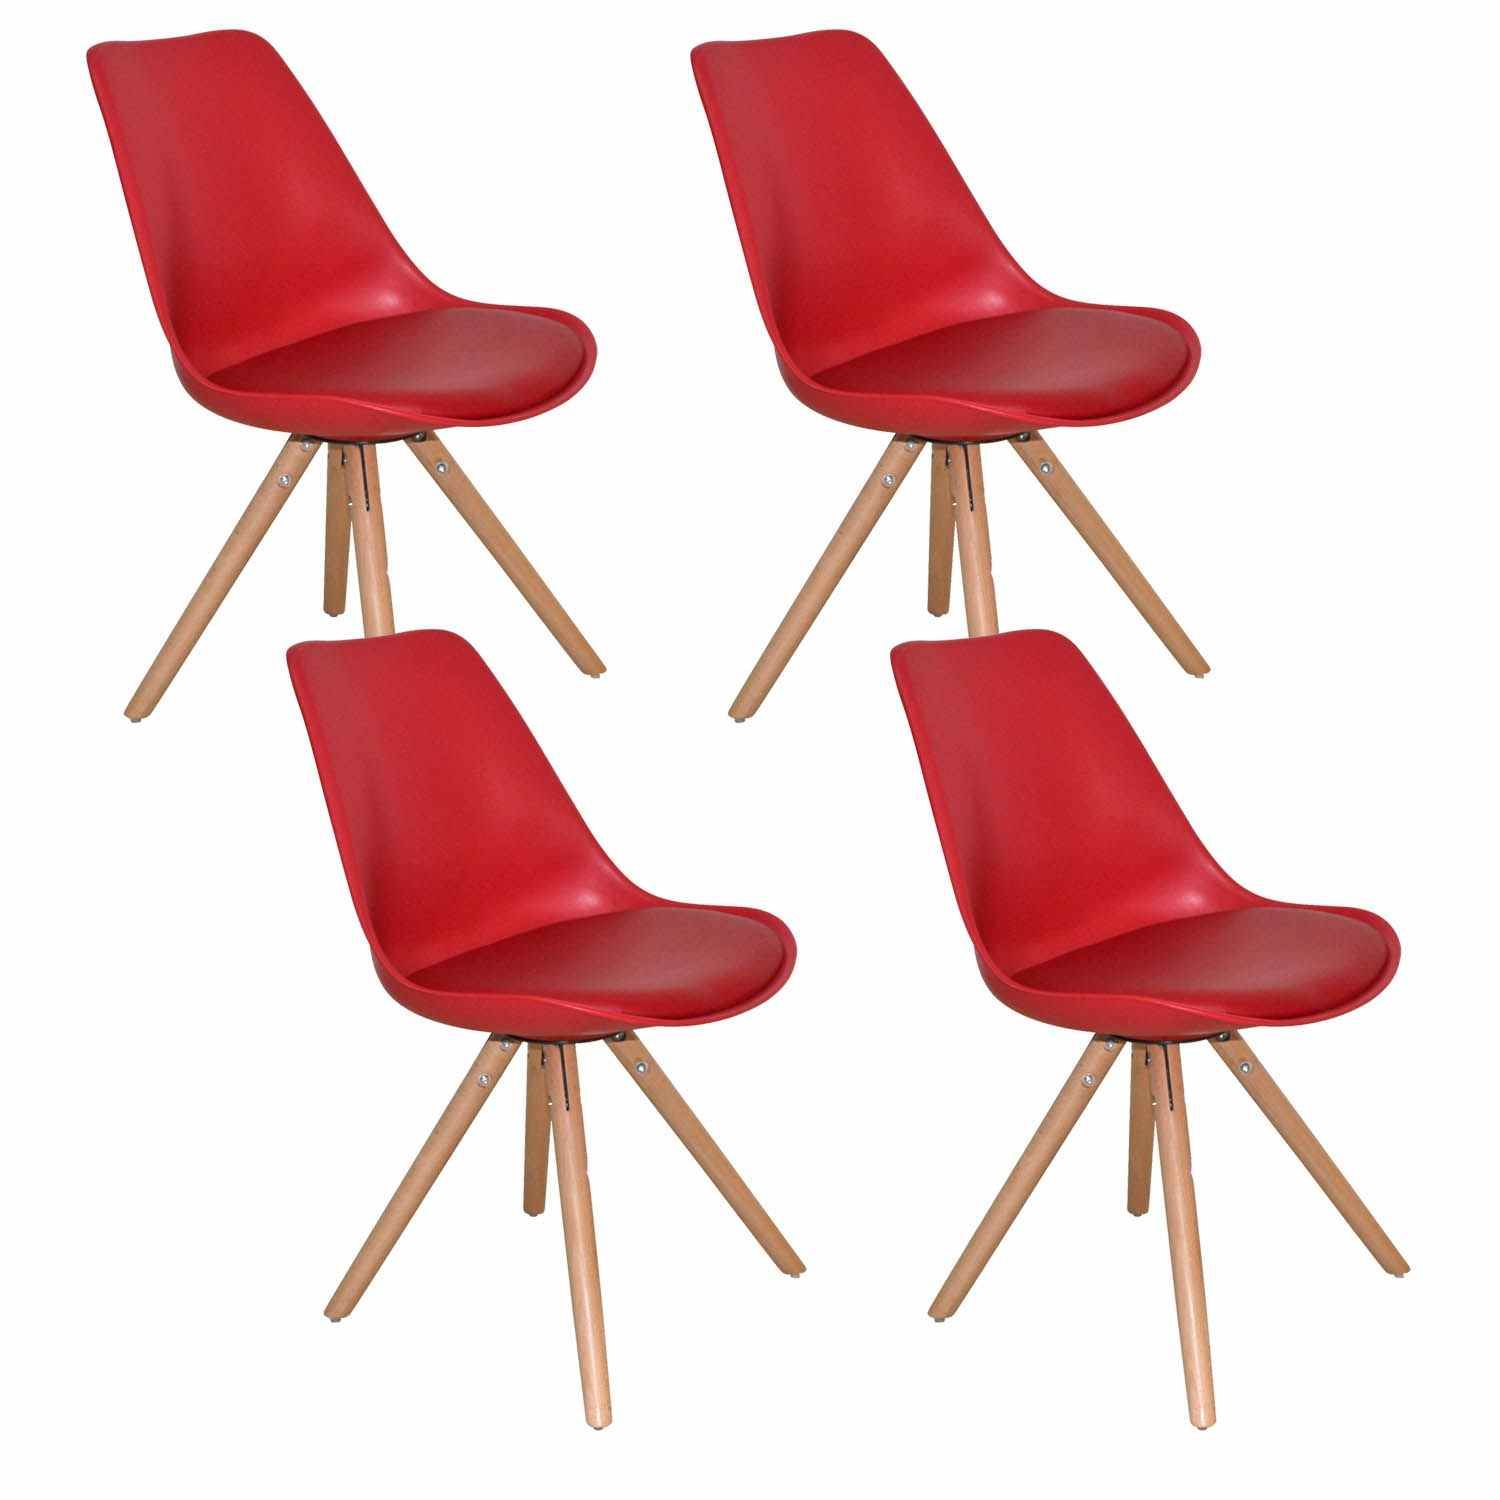 Deco in paris lot de 4 chaises design rouge velta velta - Lot de 4 chaises design ...